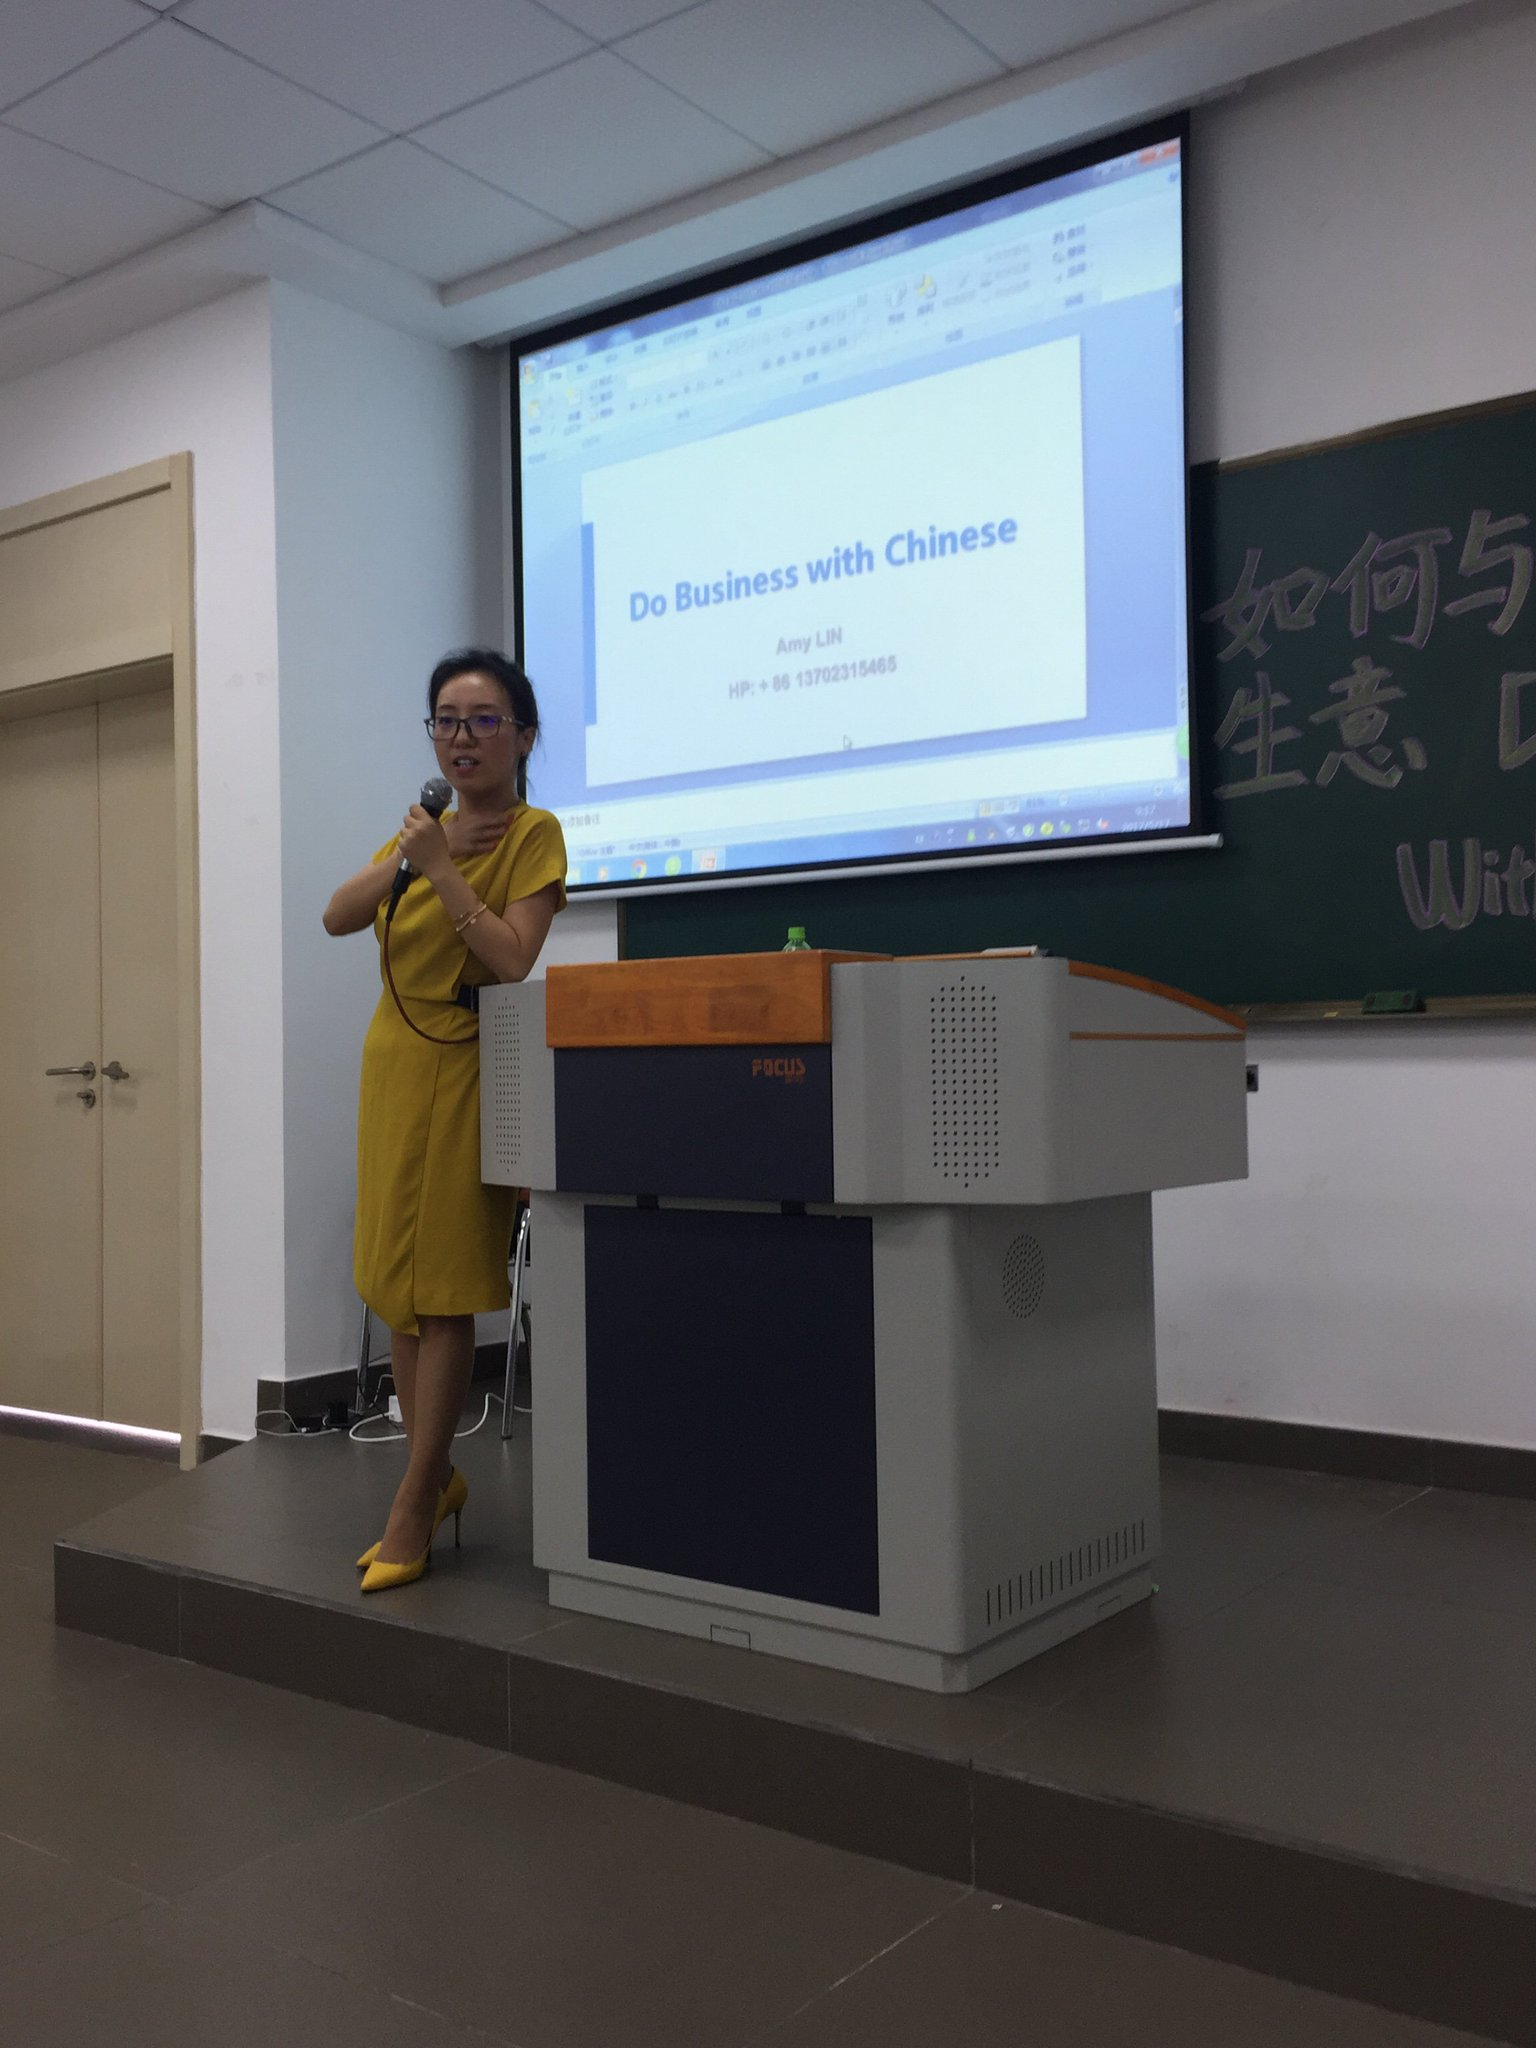 Do Business With Chinese. Amy LIN and her interactive lecture at @BeijingNormalU ZHUHAI with @GlobalBU students during #GlobalFoL17 https://t.co/fEURKjsCwf